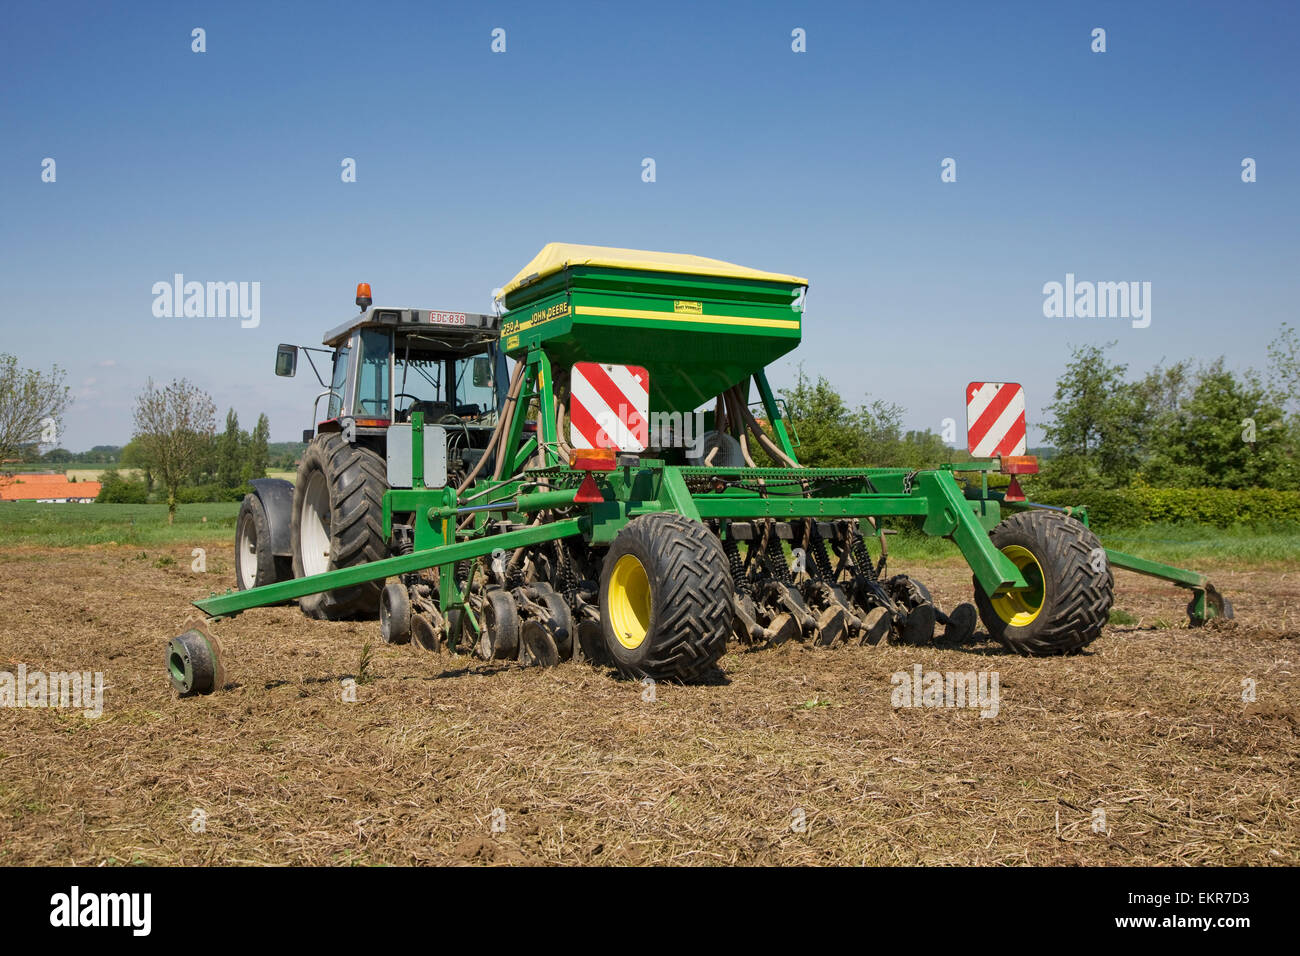 Tractor pulling John Deere 750A no-till seed drill working on farmland - Stock Image